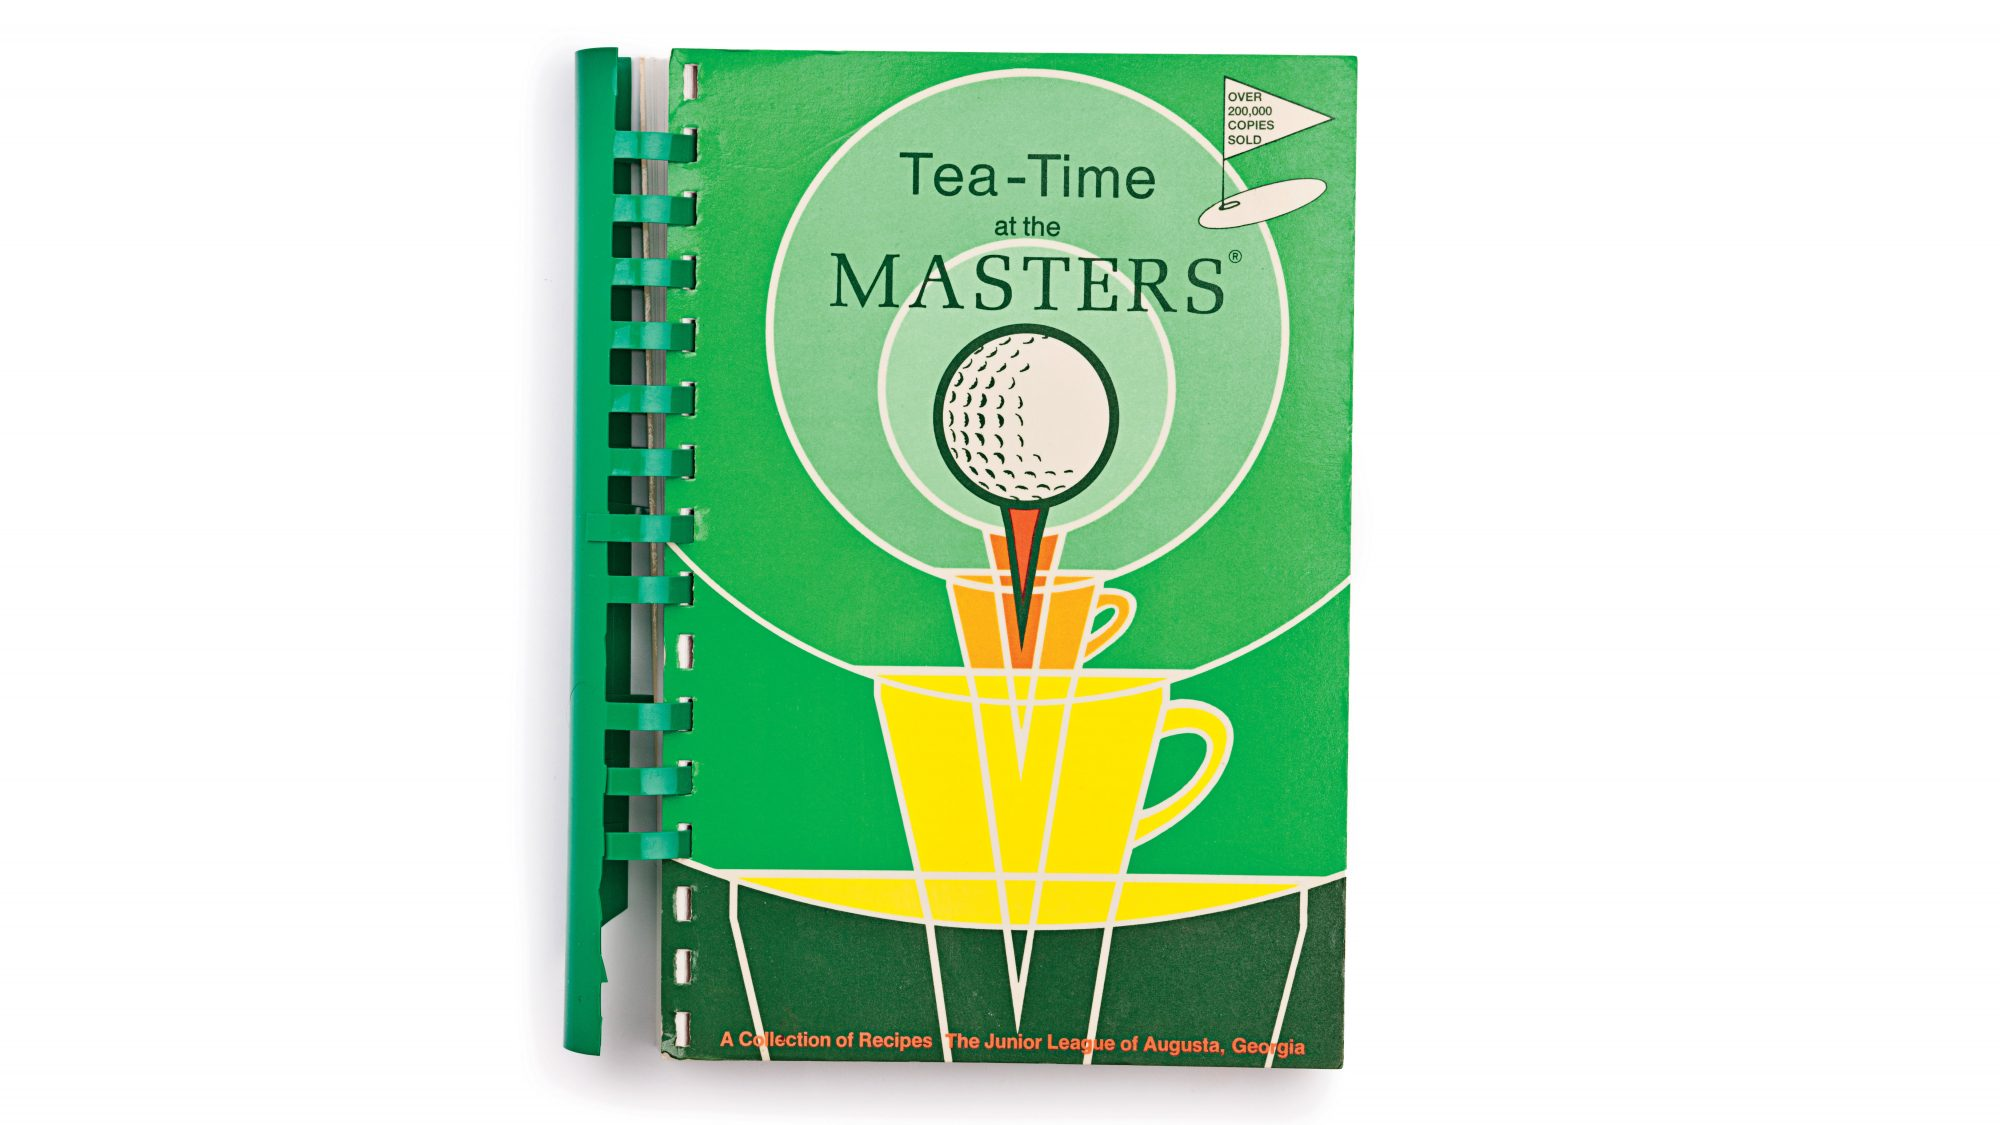 Tea-Time at the Masters by Georgia Junior League of Augusta